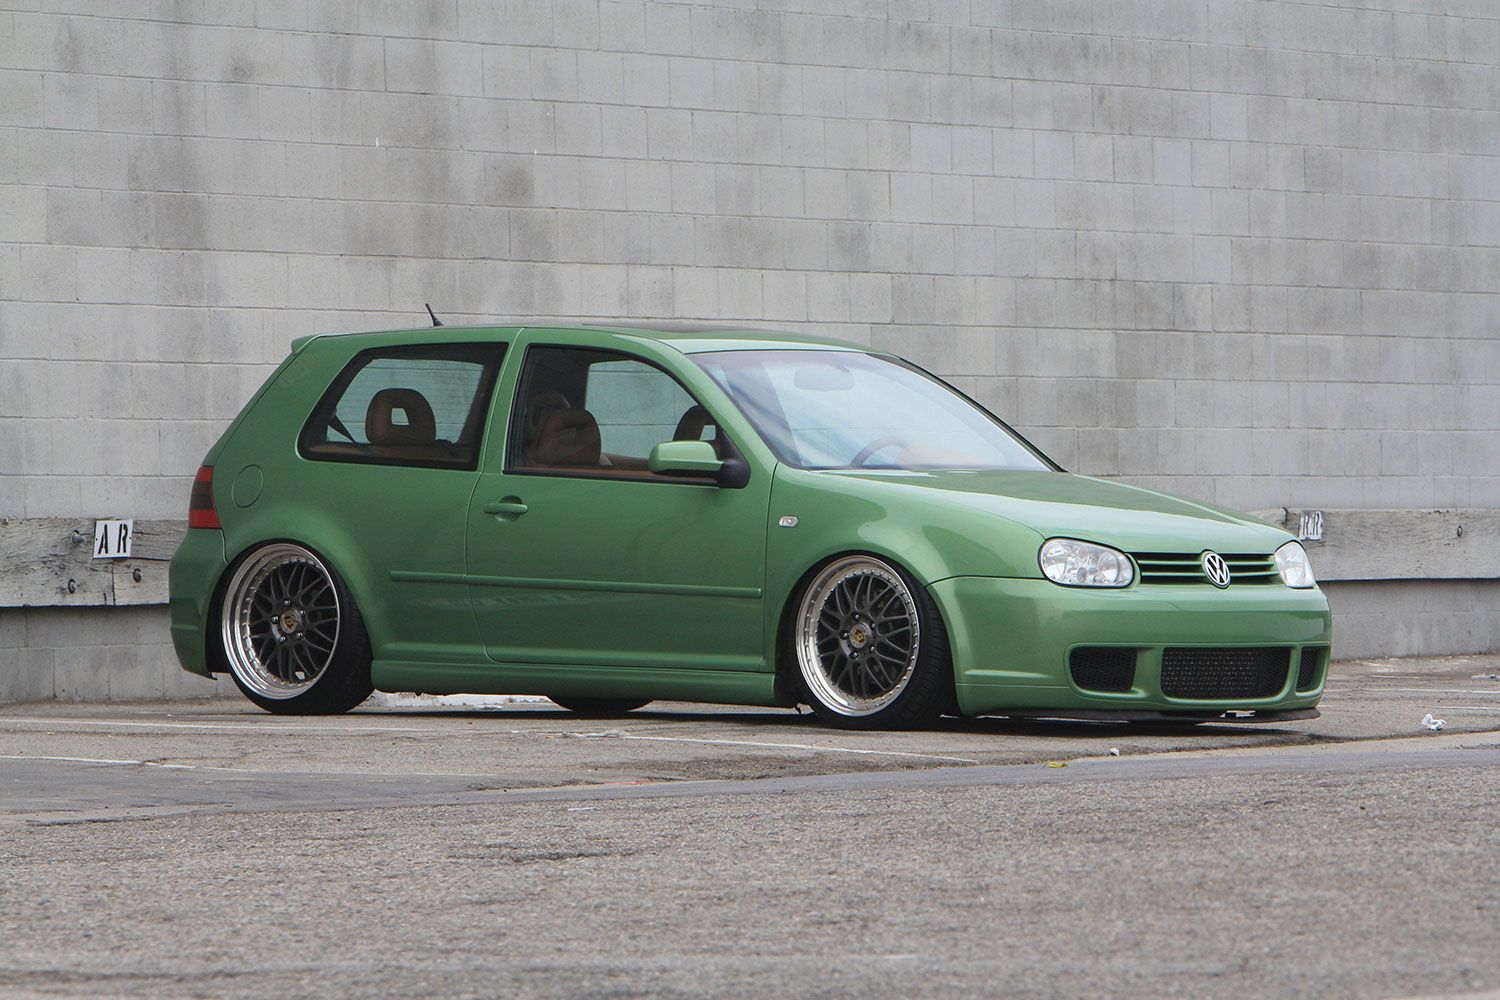 Volkswagen vr6 photo - 6